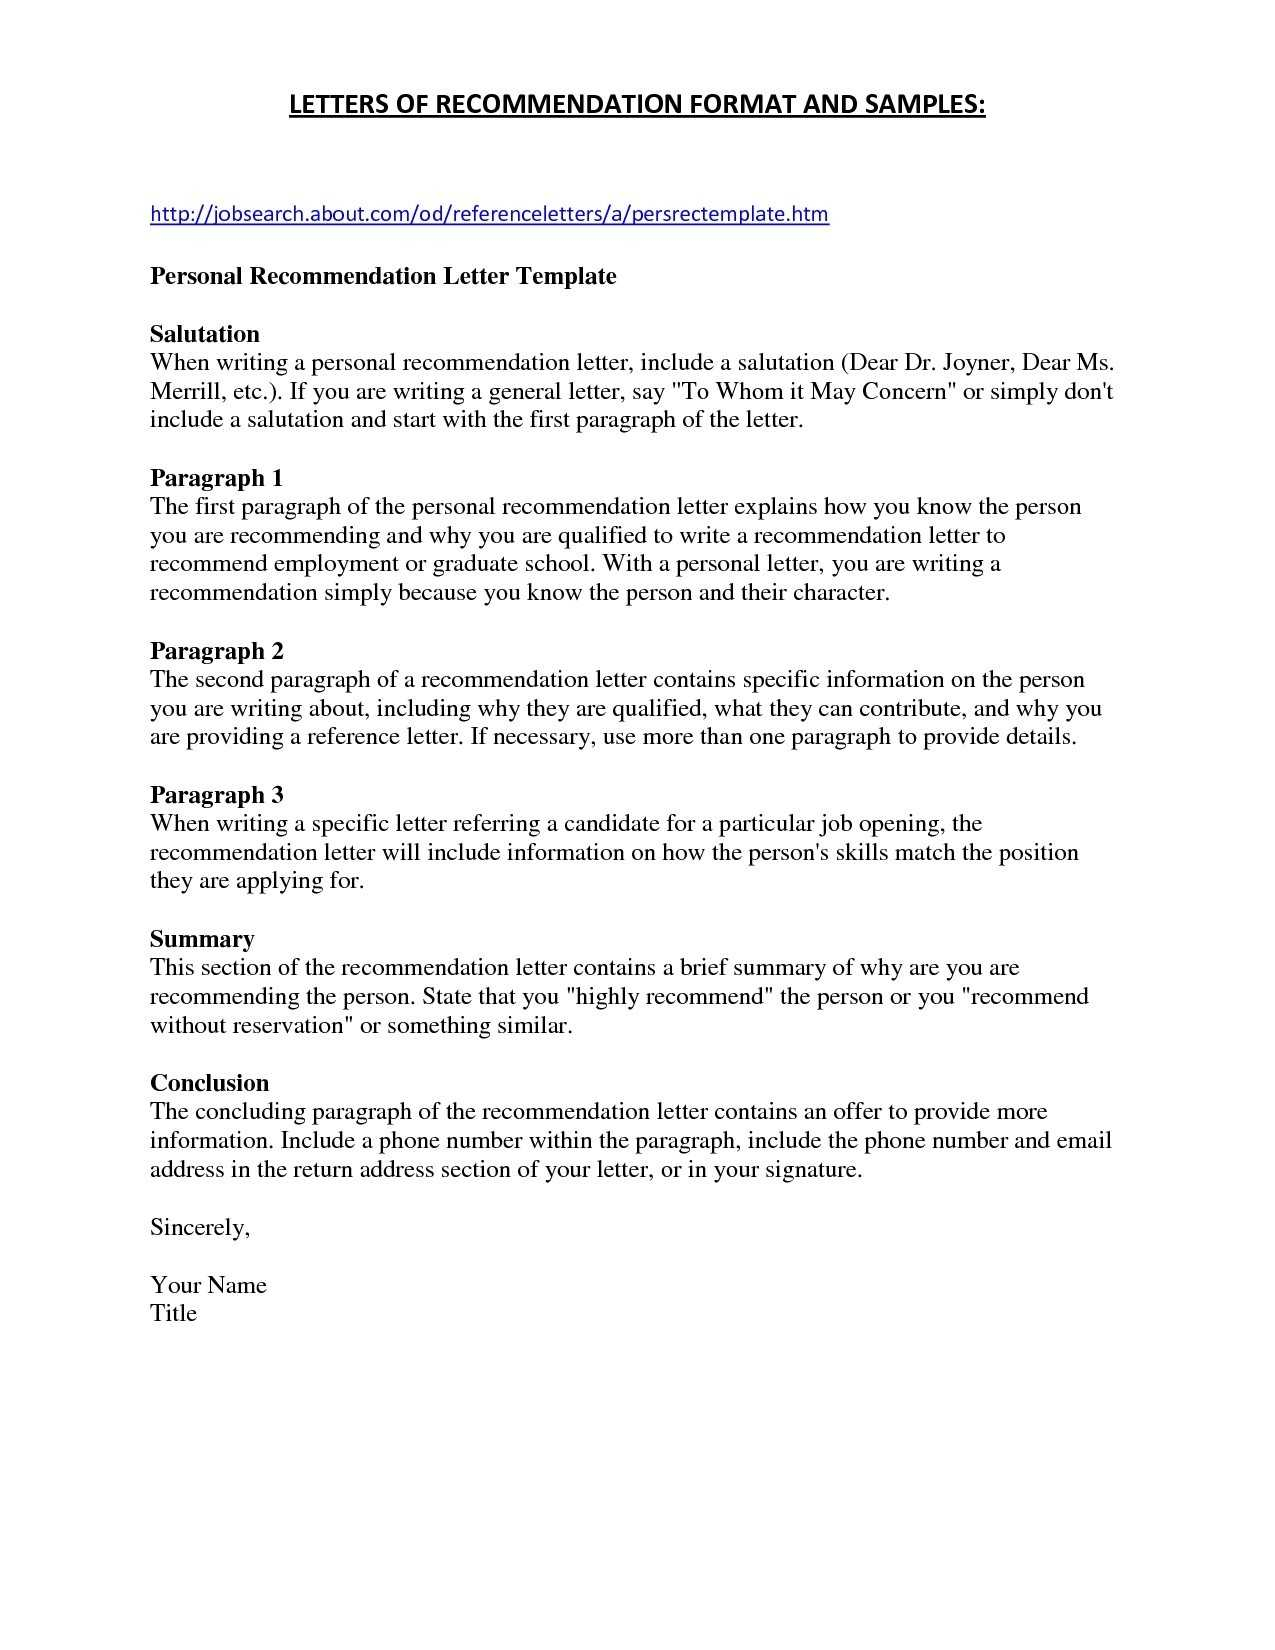 Child Support Letter Template - Child Support Letter Agreement Template Awesome Letter Agreement